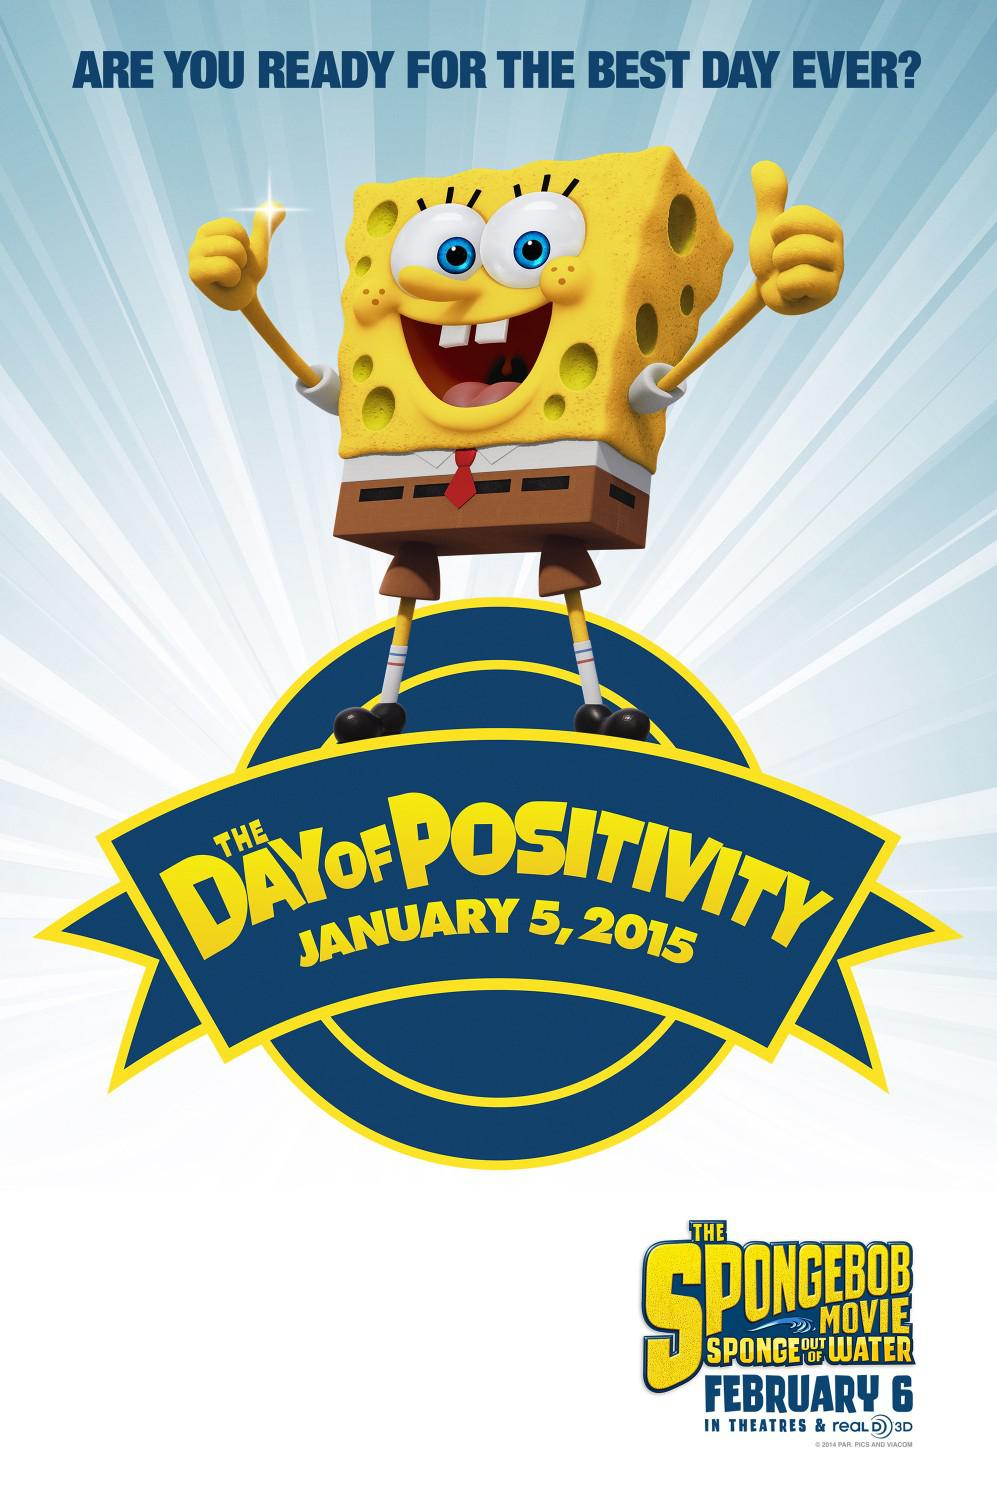 Spongebob Squarepants - Sponge out of Water - poster - Are you ready for the best day ever?